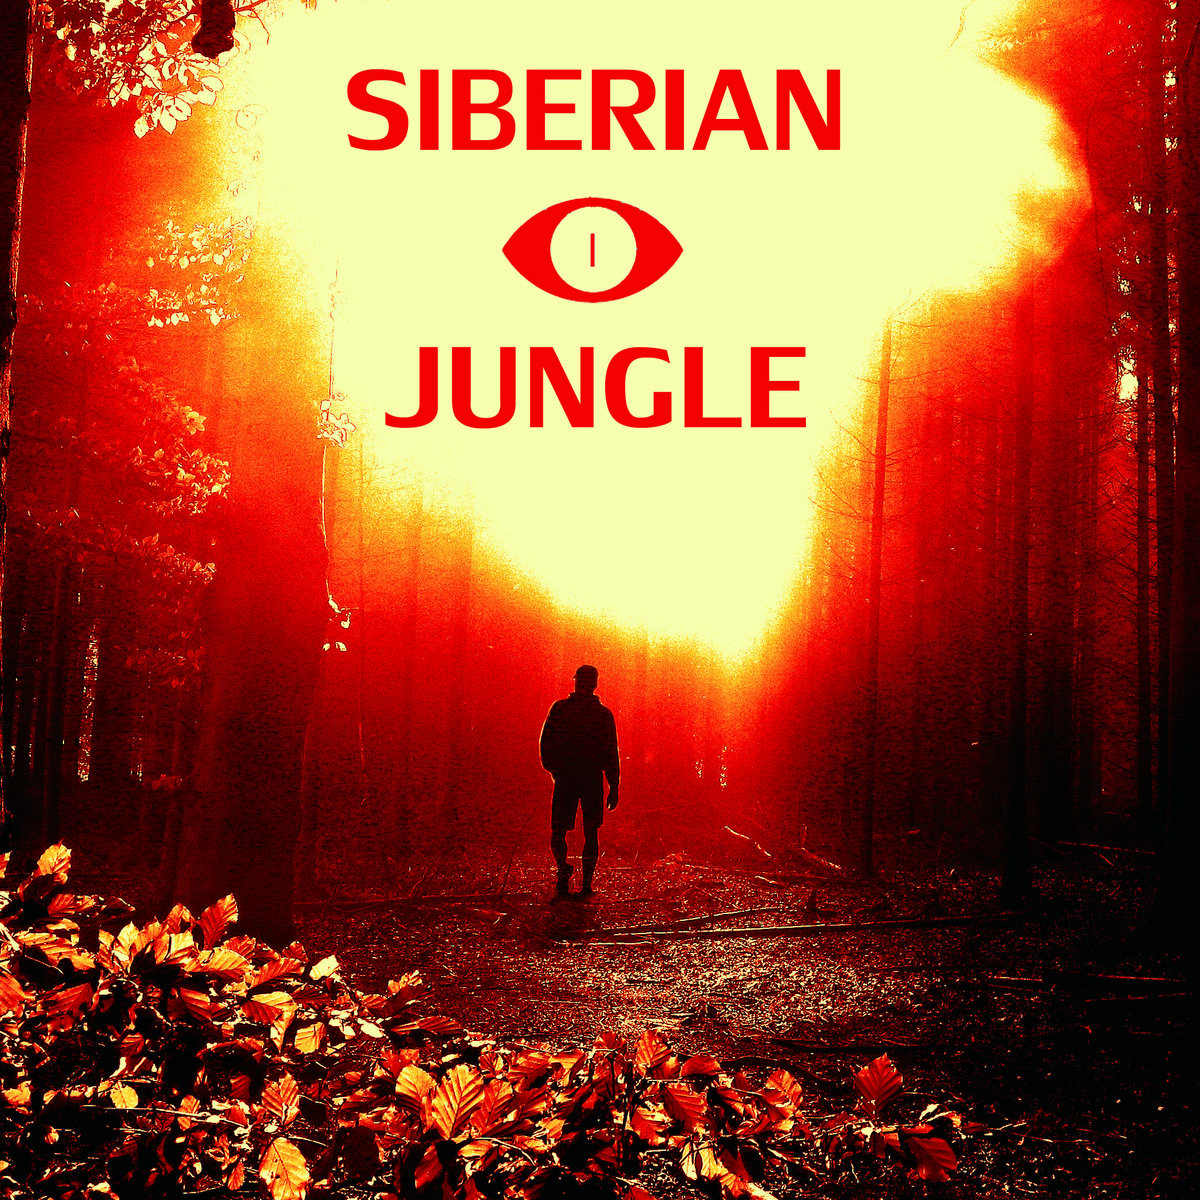 Vospi - Lonely Pretender @ 'Siberian Jungle - Volume 1' album (atmospheric drum'n'bass, electronic)